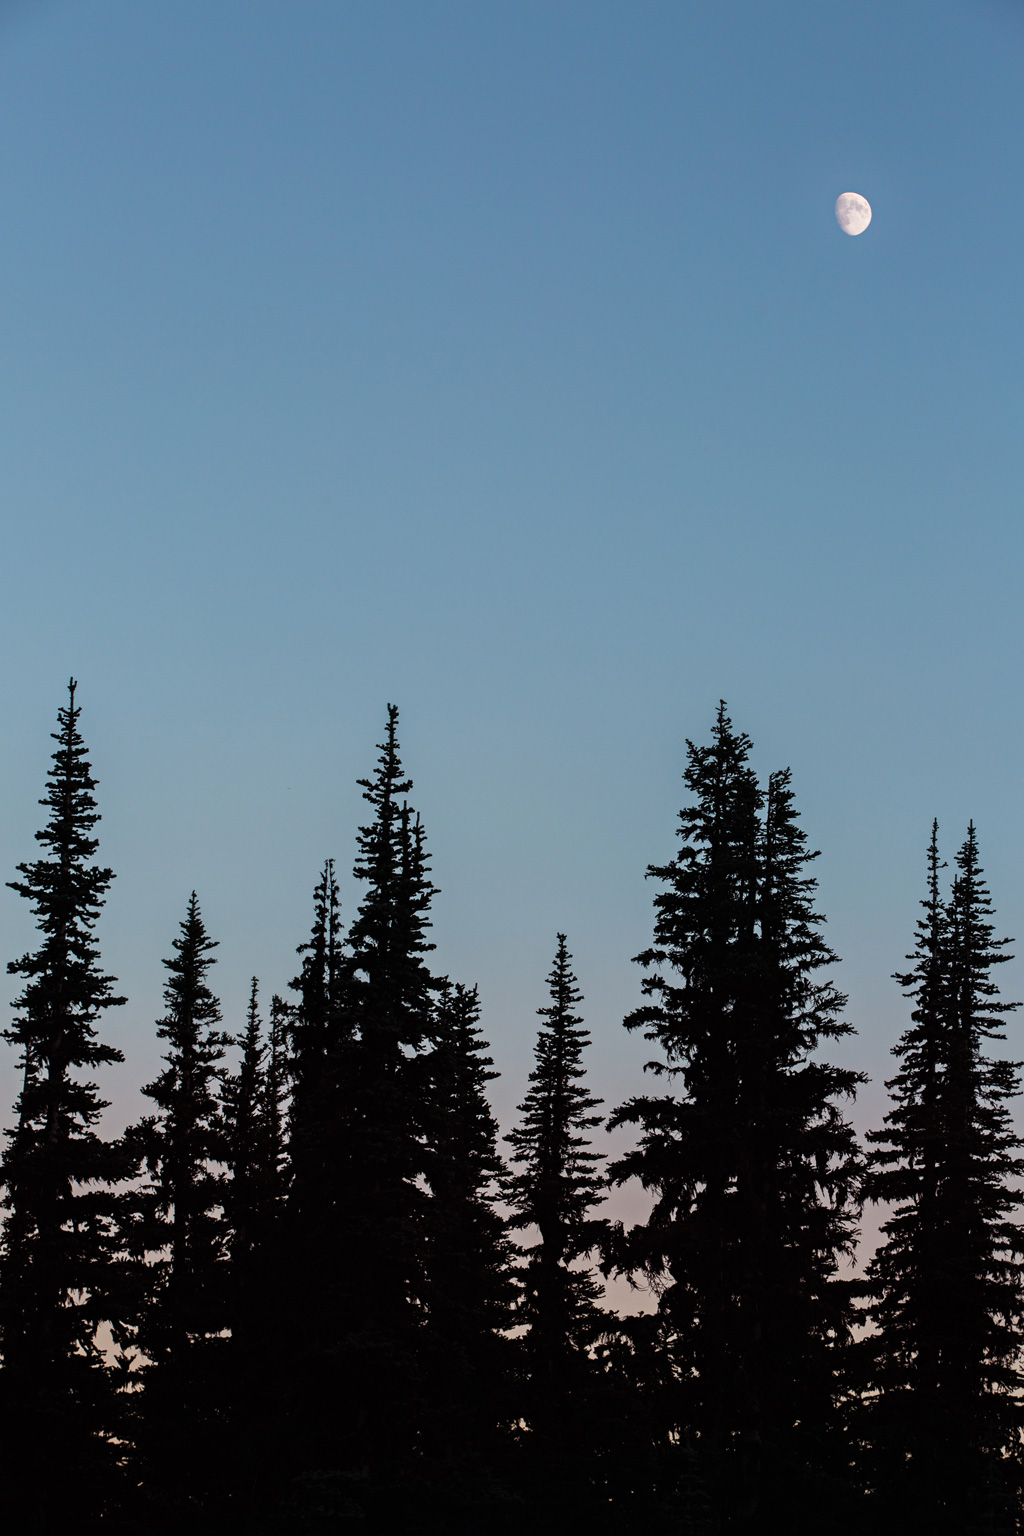 CindyGiovagnoli_Mount_Rainier_National_Park_Washington-020.jpg